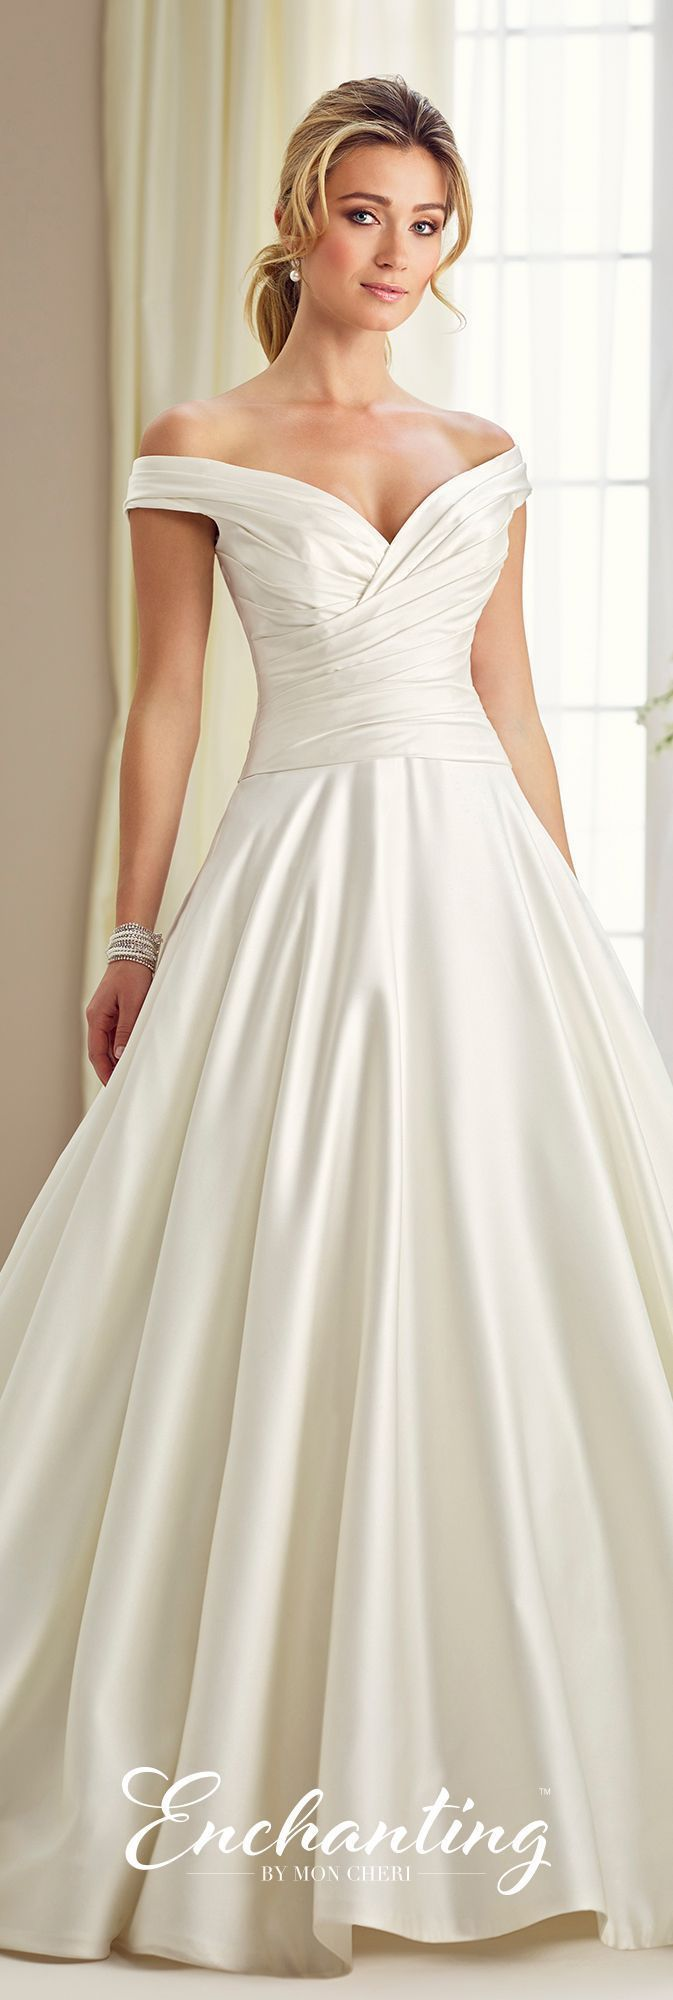 Off-The-Shoulder V-Neck Satin Ballgown with a Draped Bodice- 217119